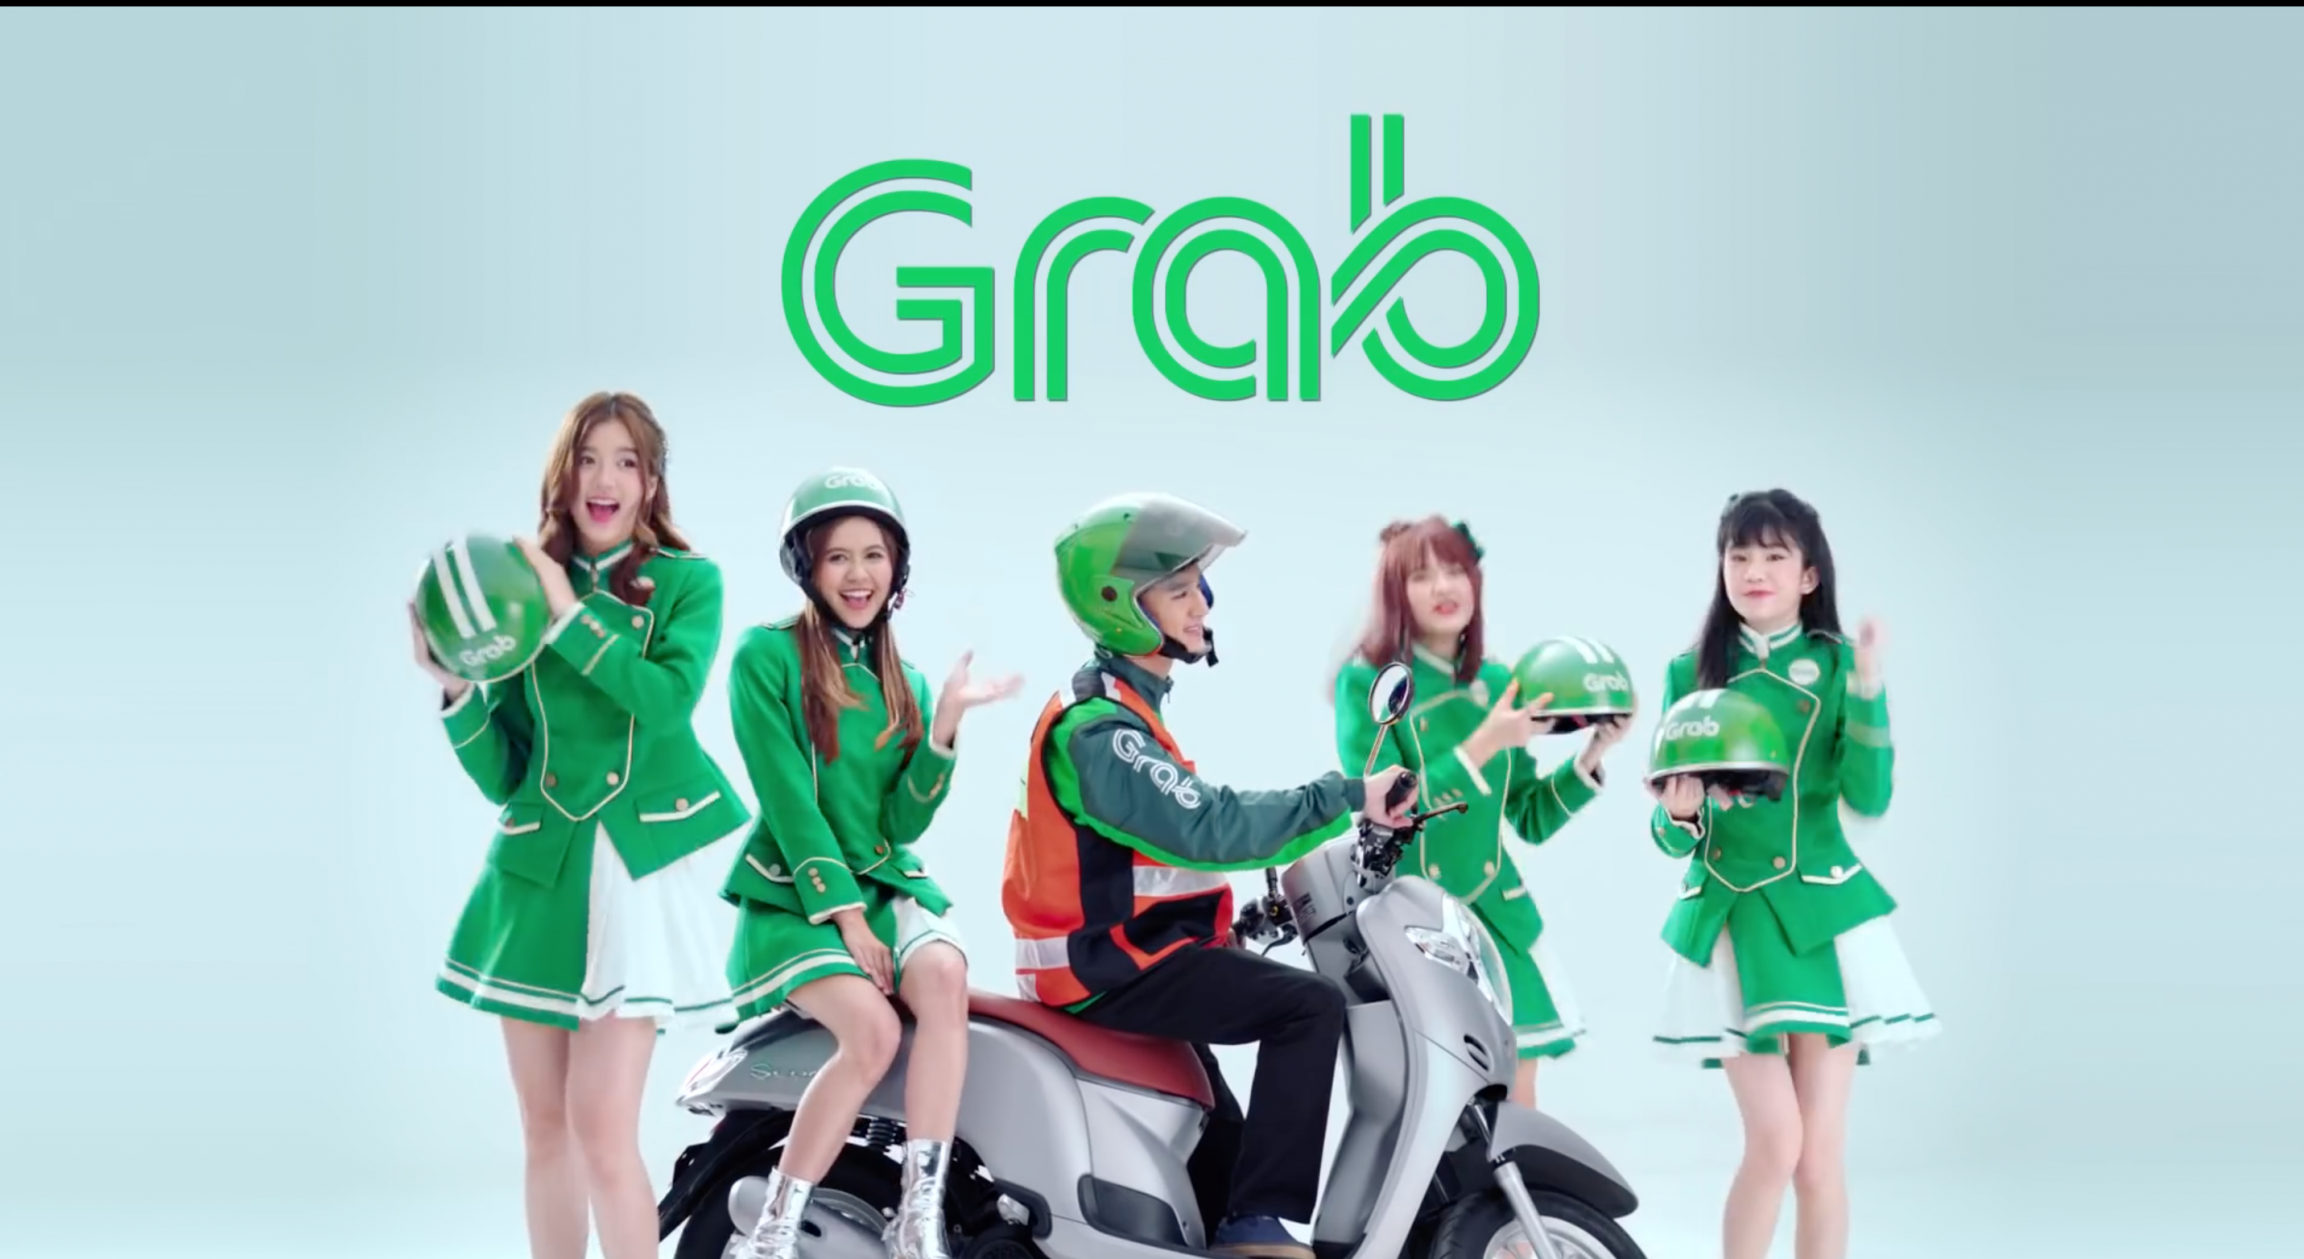 A popular girl band poses near a Grab driver wearing green uniform